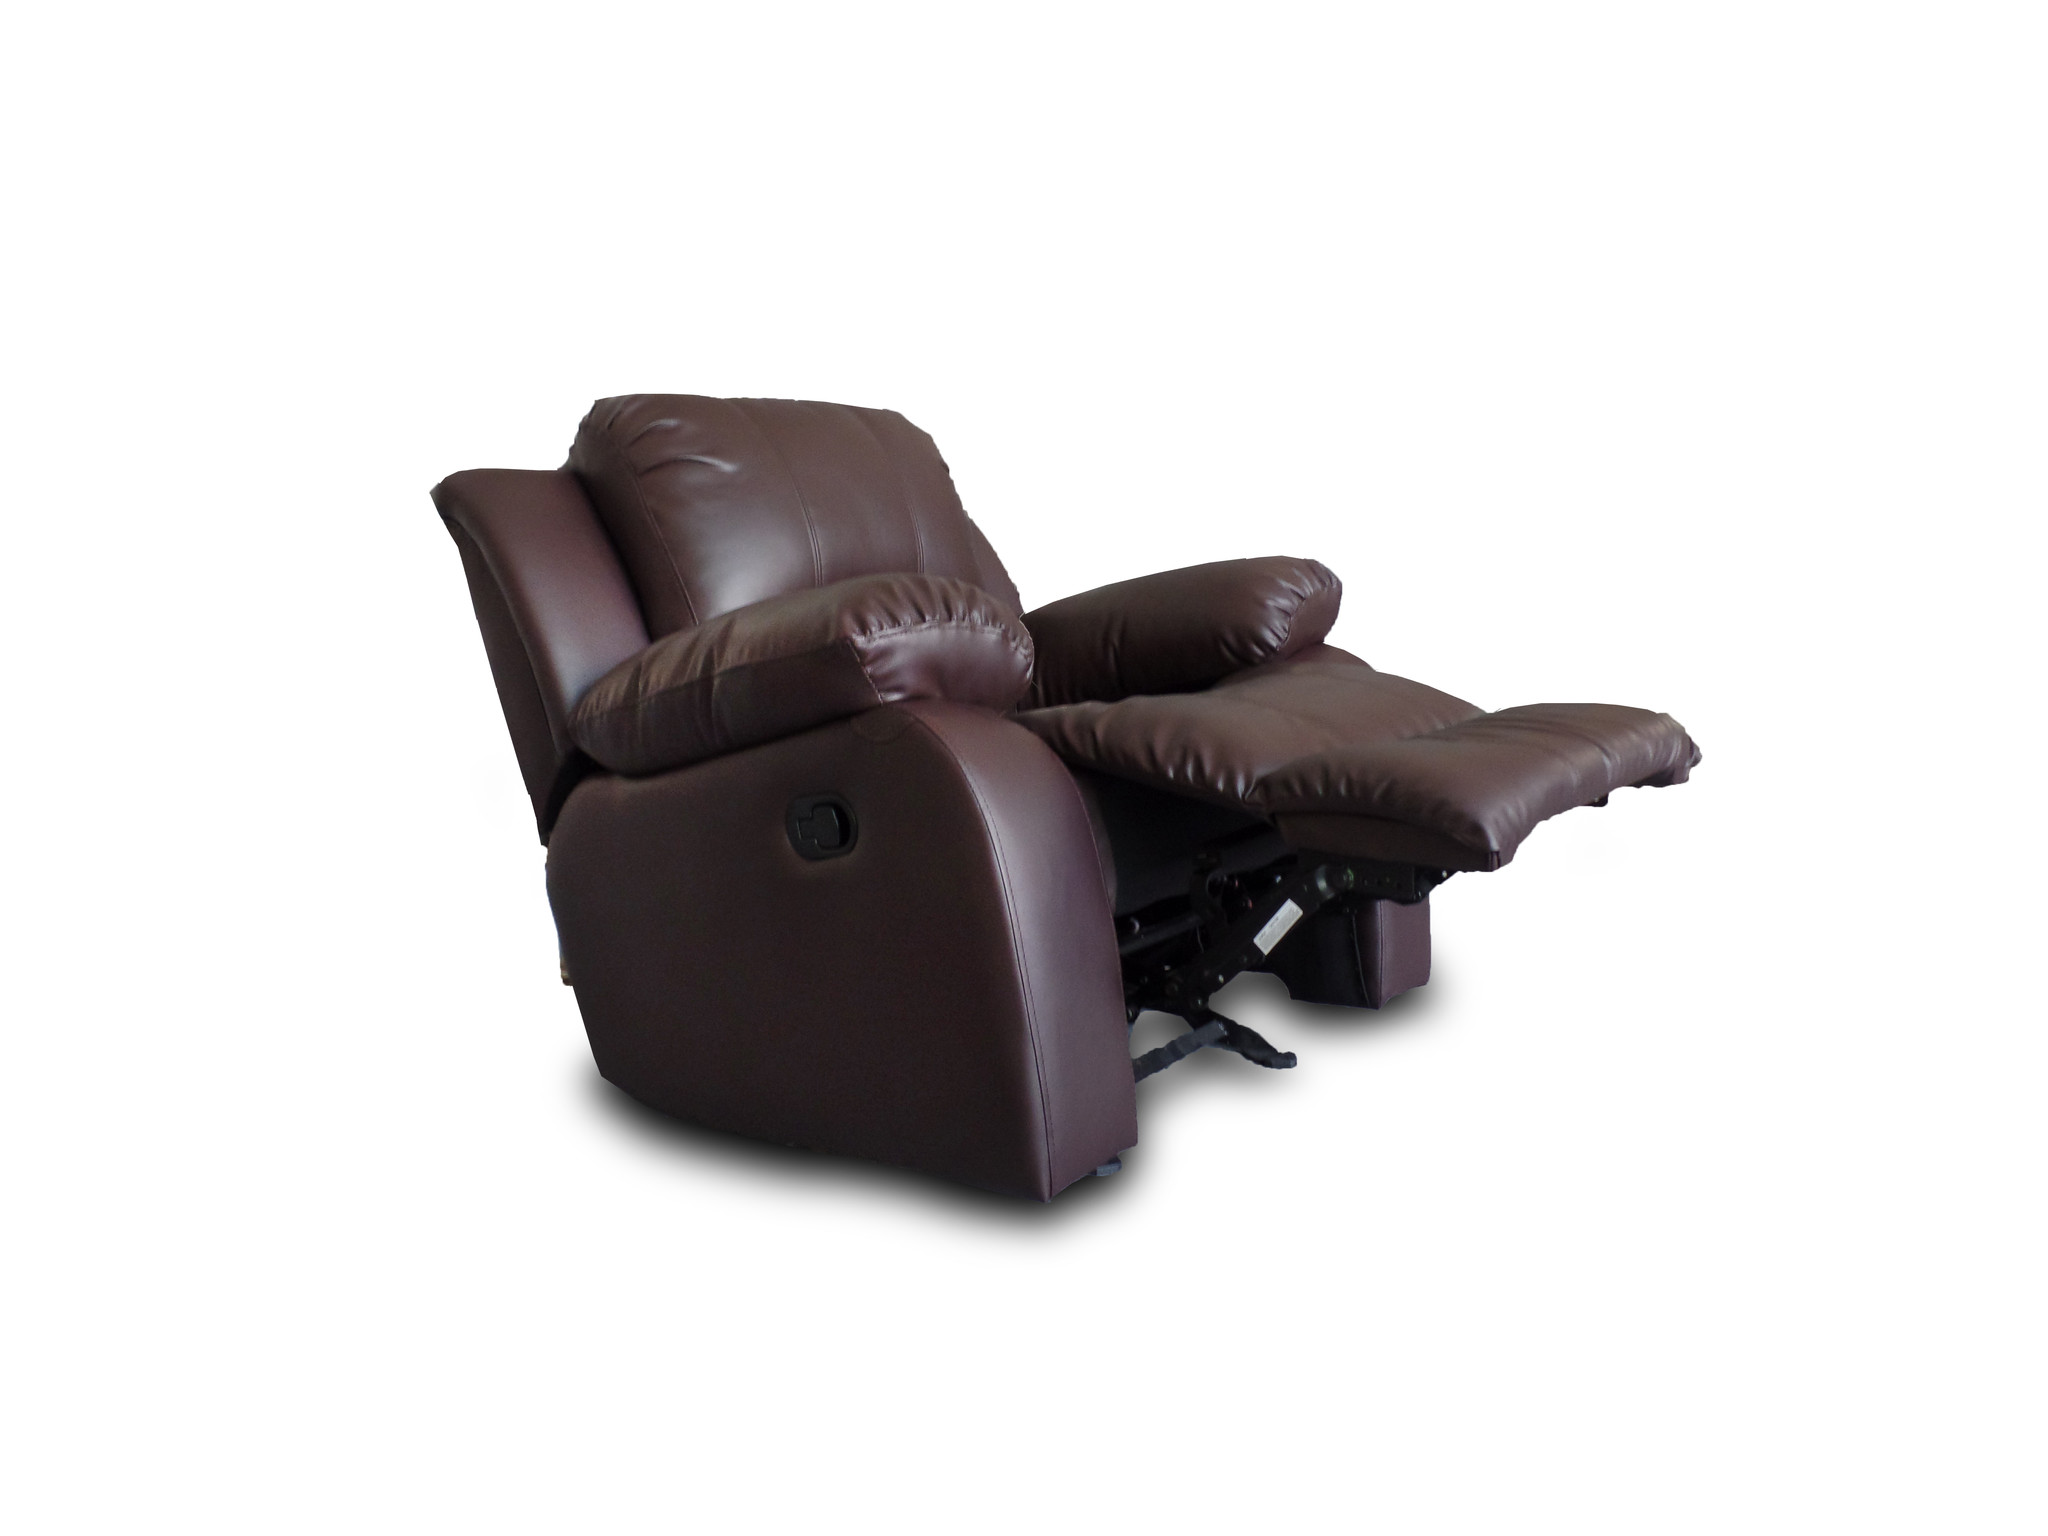 Classic Oversize and Overstuffed Single Seat Bonded Leather ...